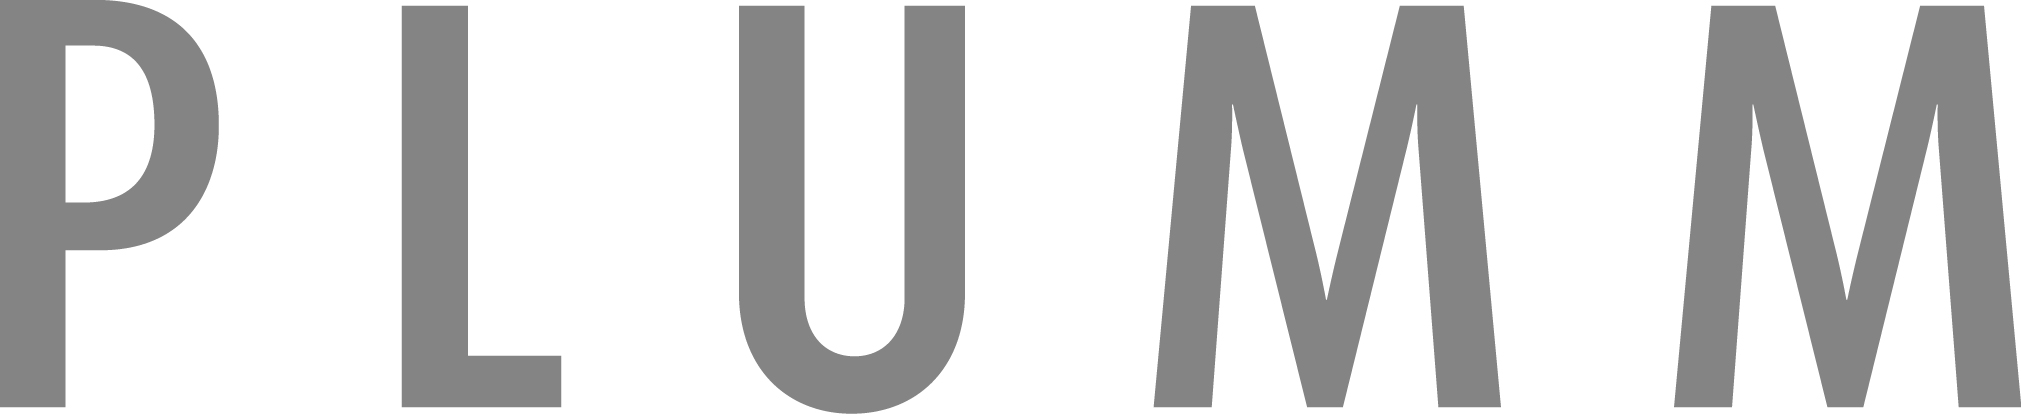 Plumm_Logo_Updated_GR_No-Cork_300dpi_Greyscale.jpg